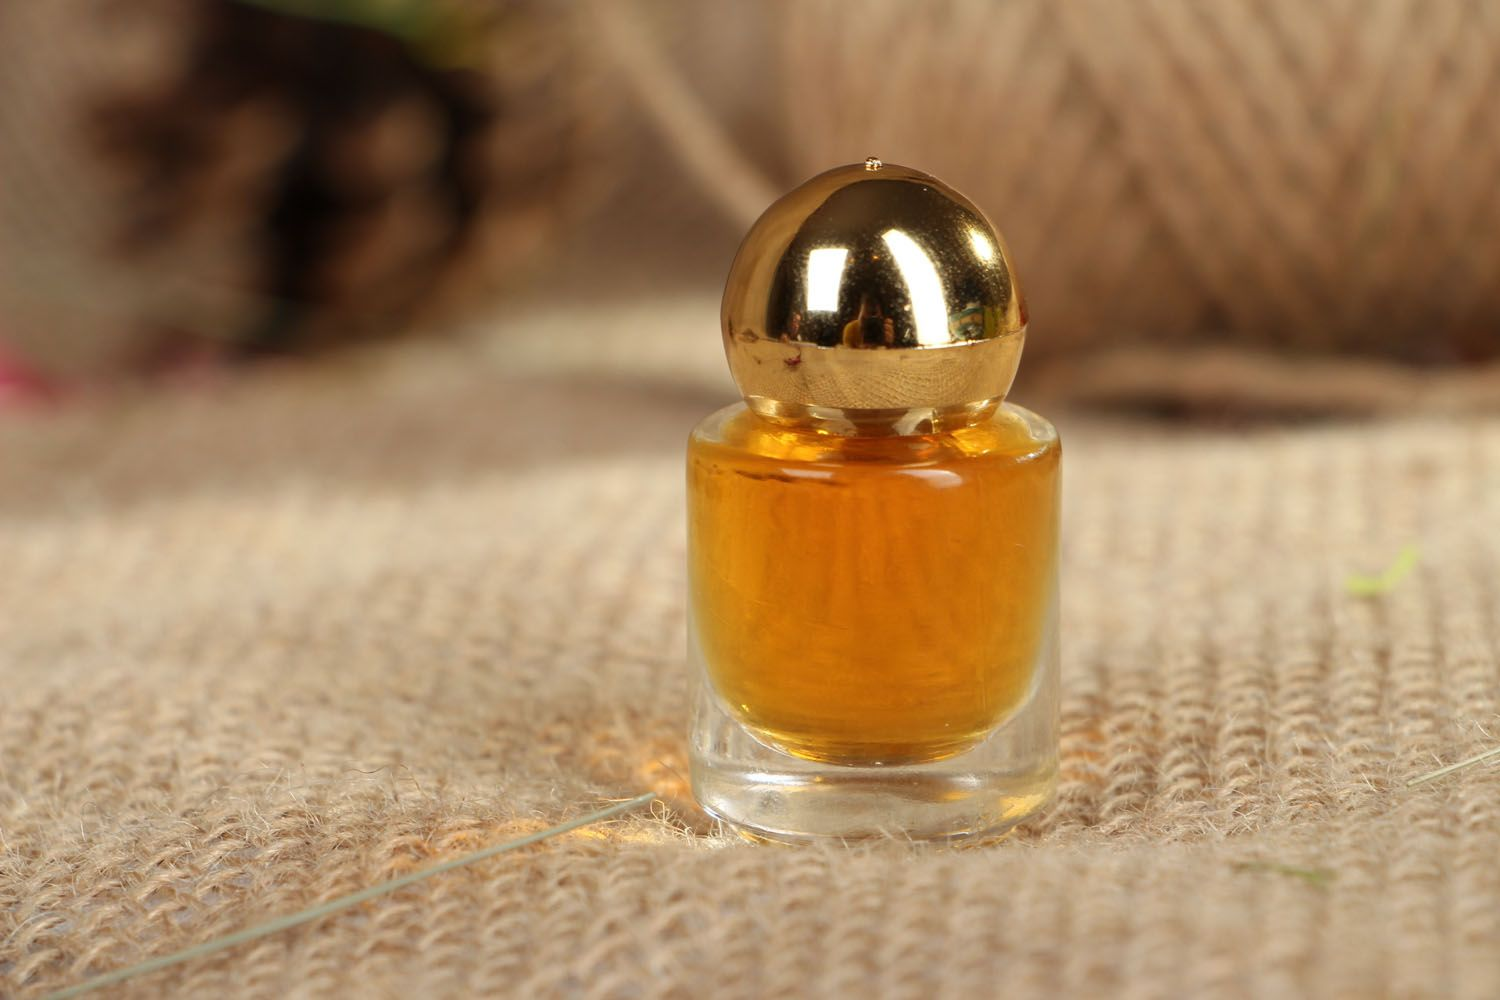 Middle Eastern scented perfume photo 3